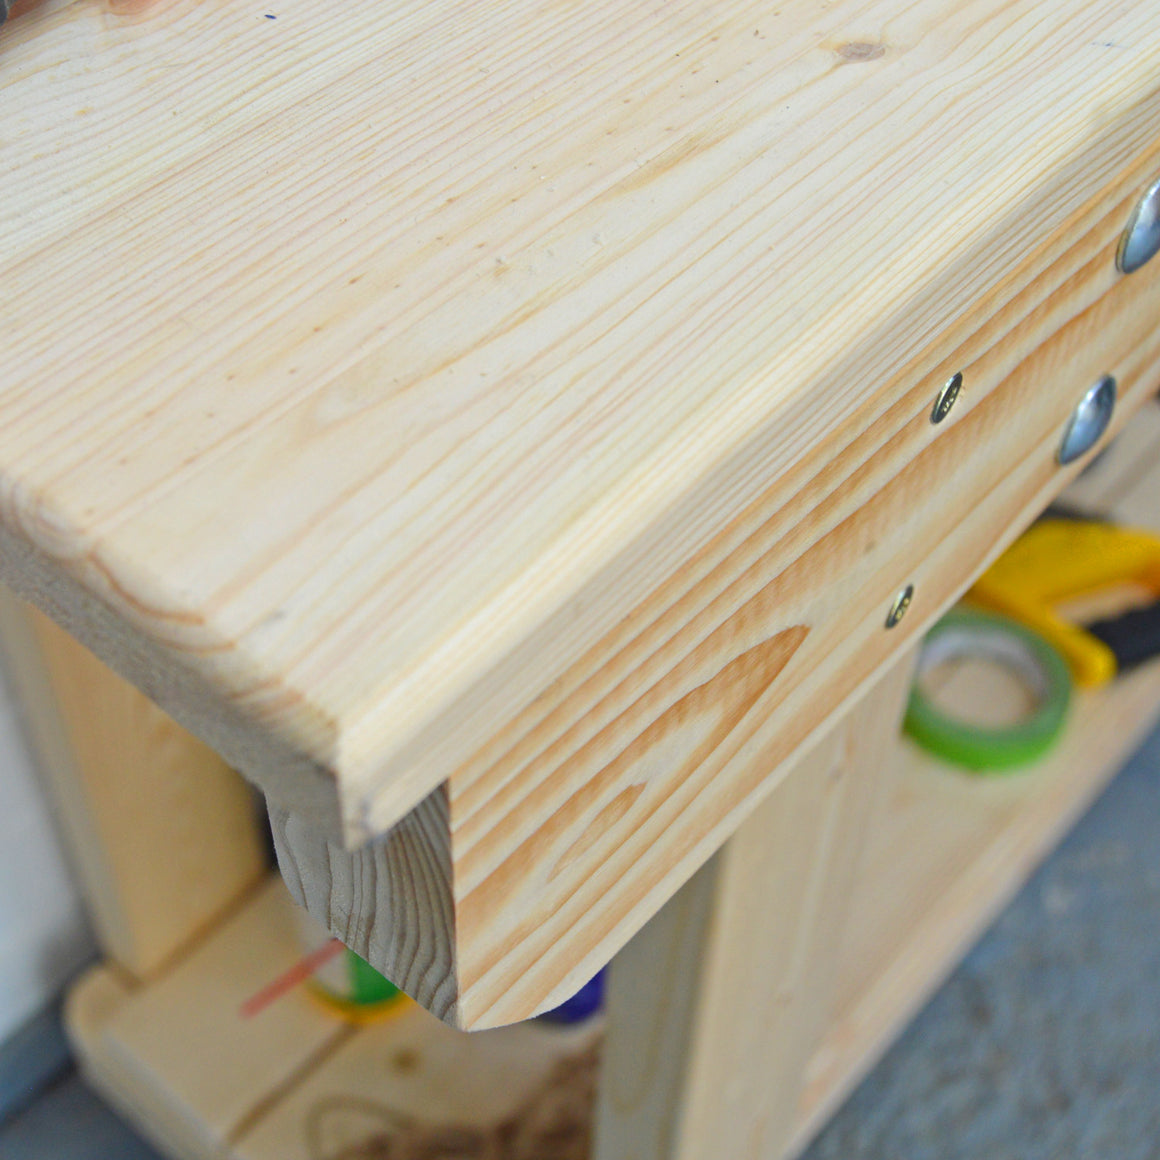 4 ft Endurance Workbench - 100% Solid Pine